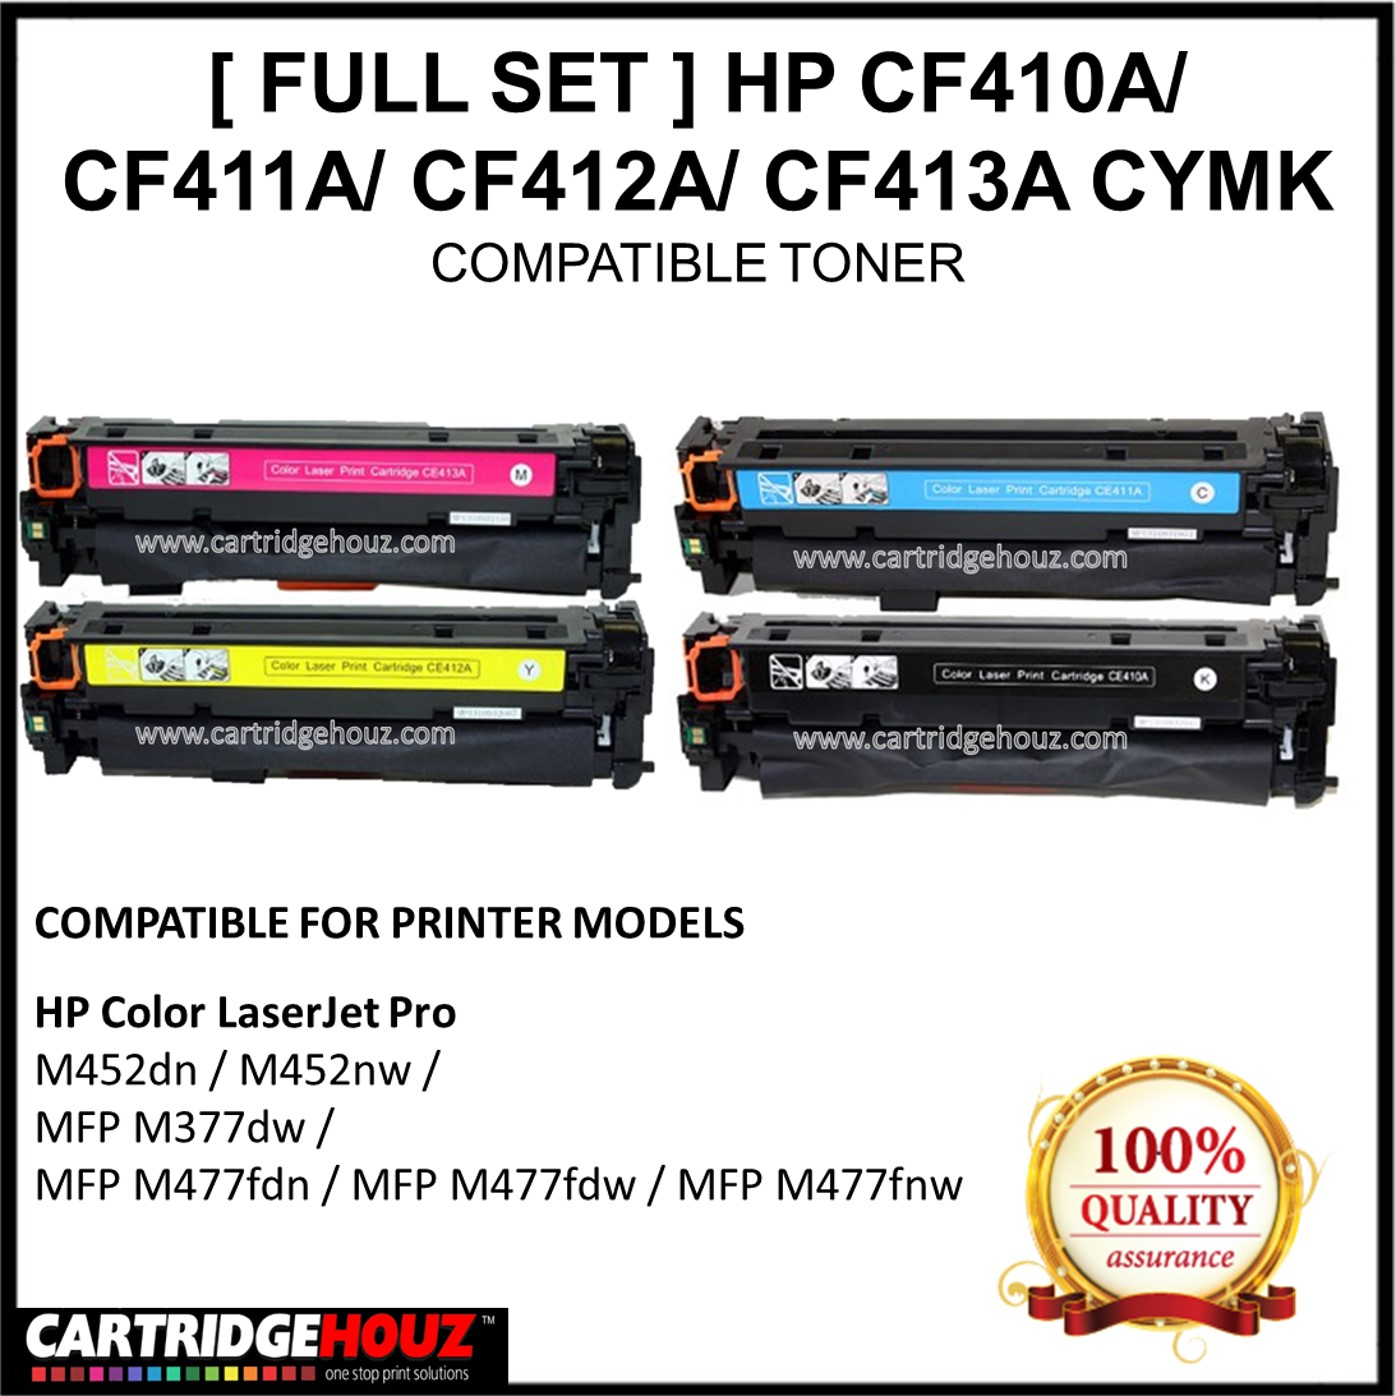 Printer Supplies Compatible with HP CF410X Toner Cartridges Applicable Machines HP Color Laserjet Pro M452dw//M452nw//M452dn//M477fnw//MFP M477fdw Laser printer-4colors